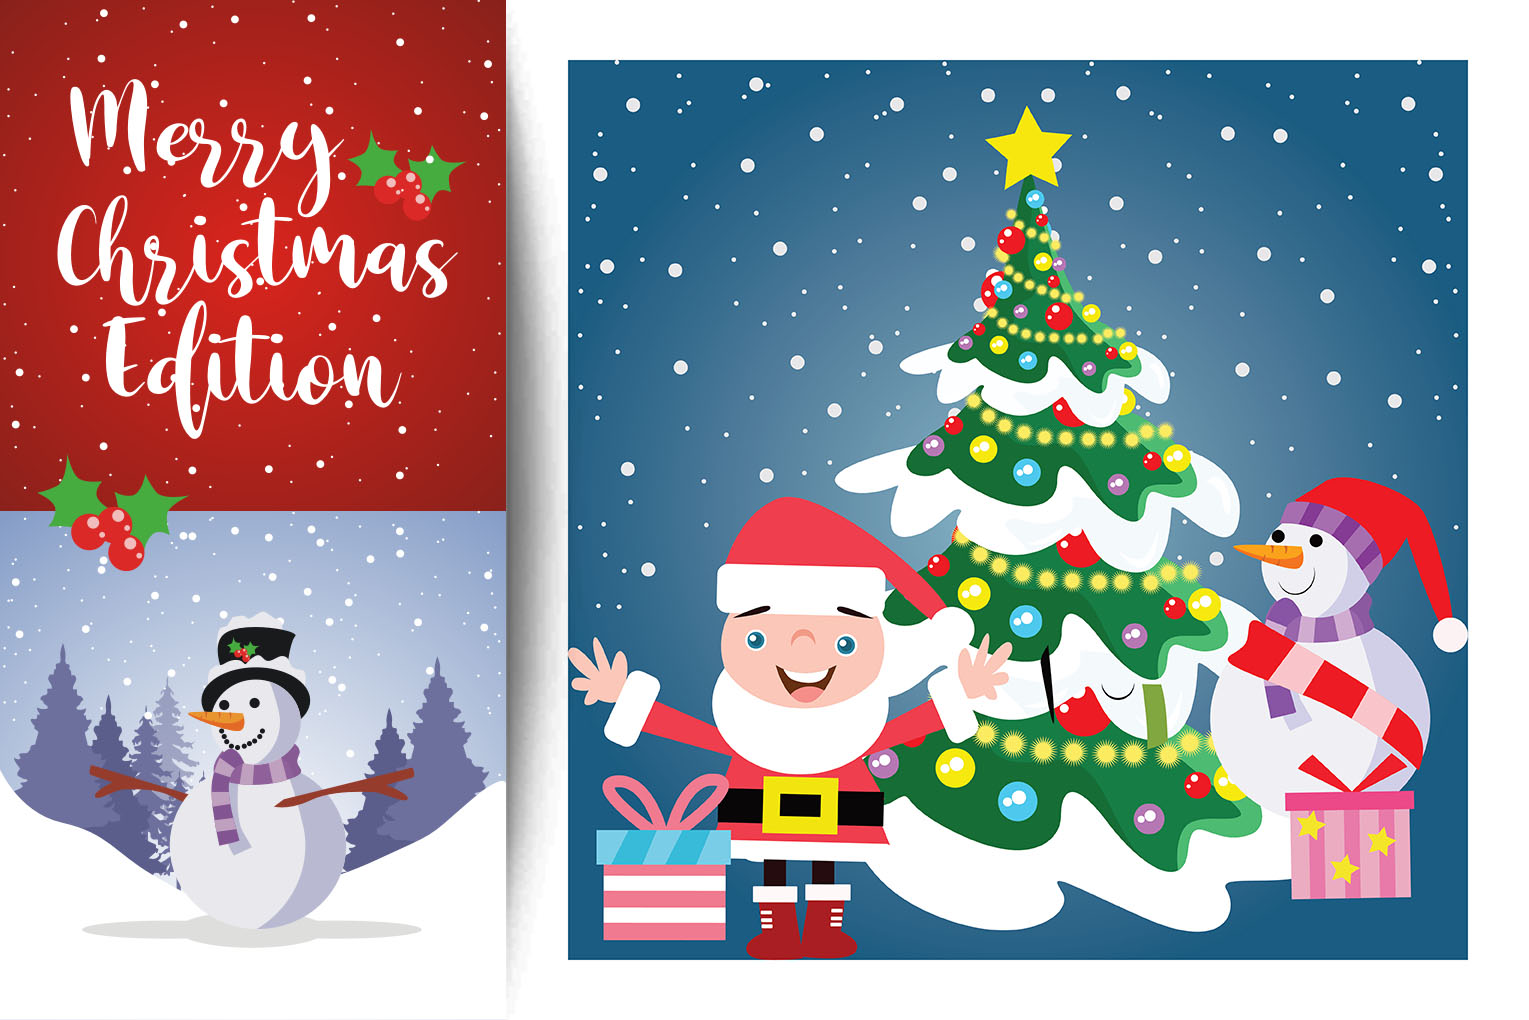 Download Free Christmas Winter Illustration Design Vector Graphic By for Cricut Explore, Silhouette and other cutting machines.